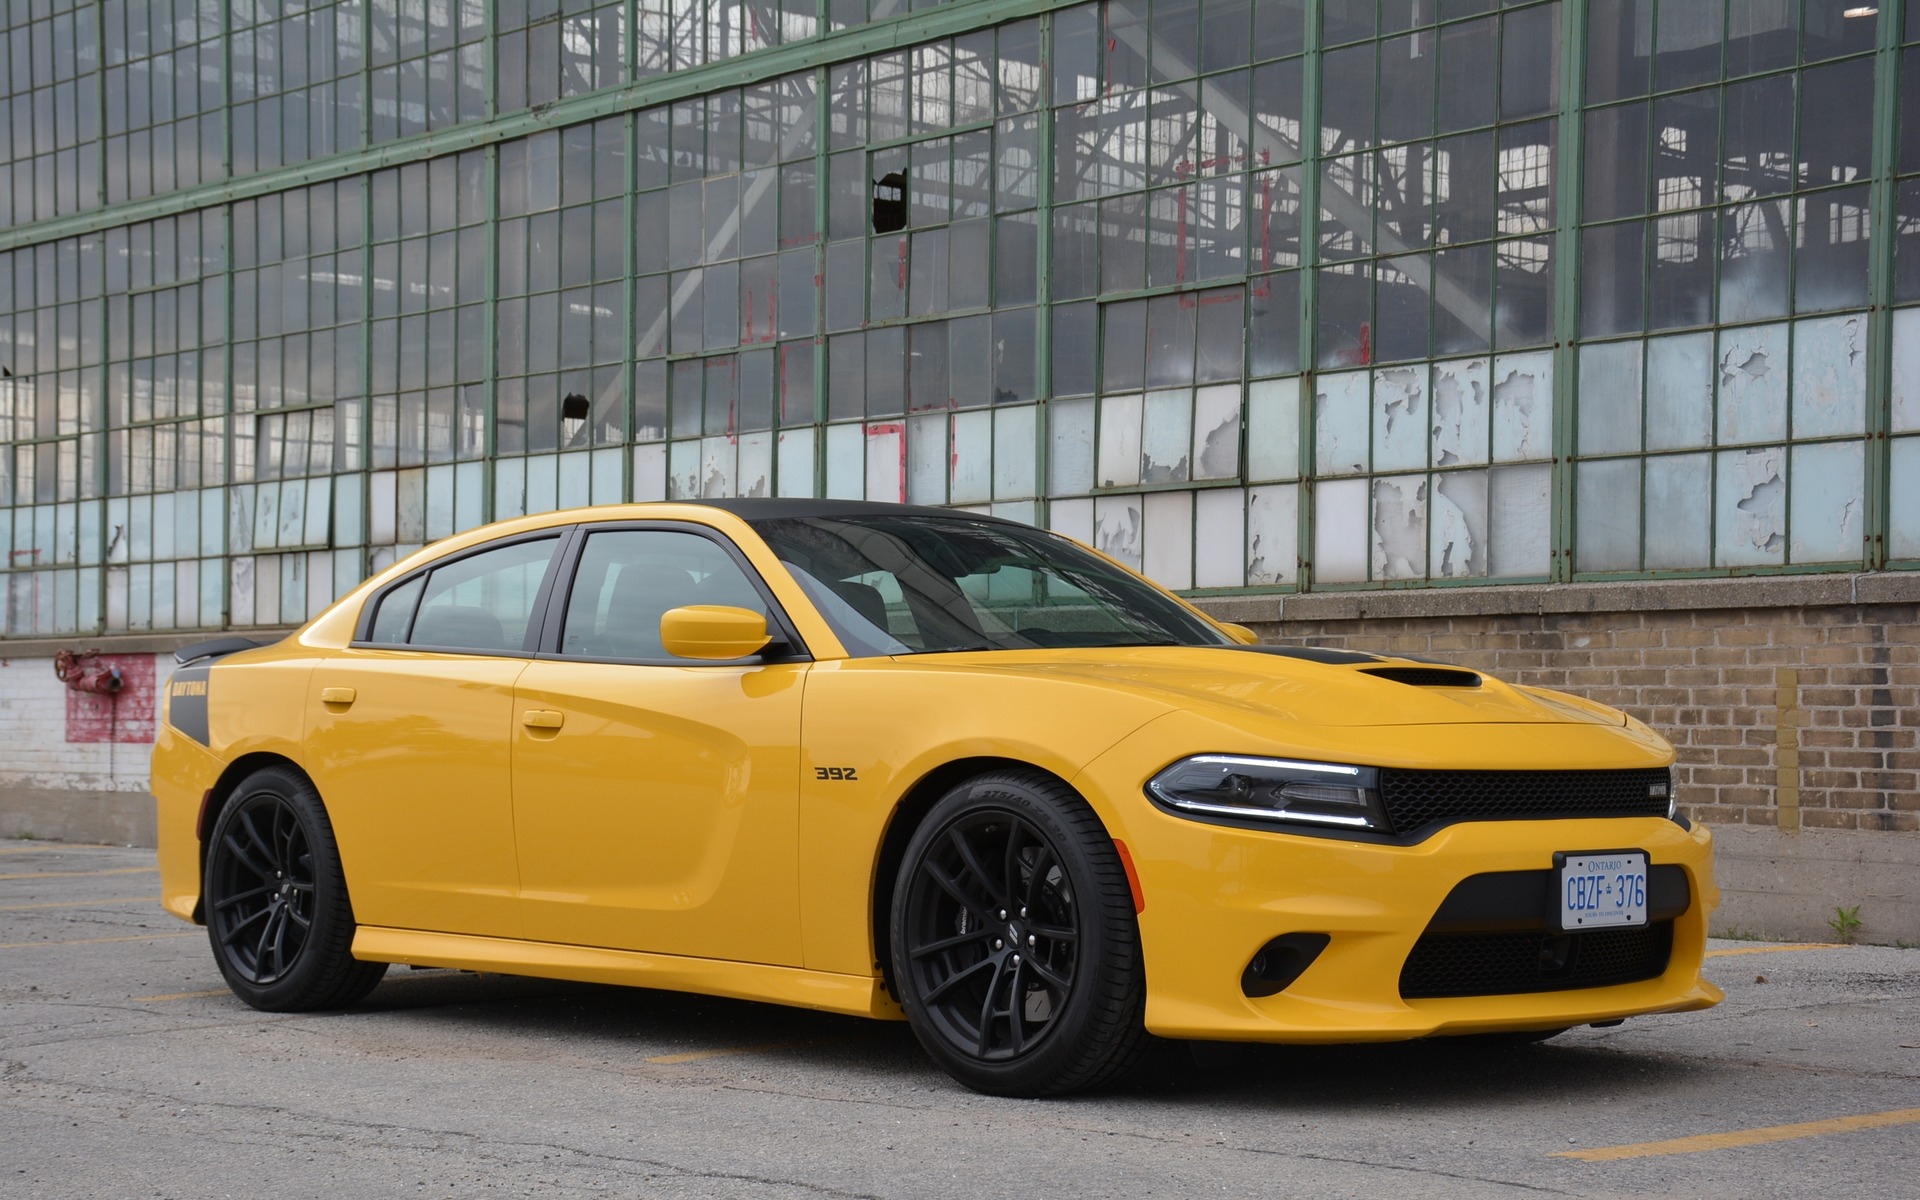 2017 Dodge Charger Daytona 392 A Throwback To The Good Ol Days The Car Guide